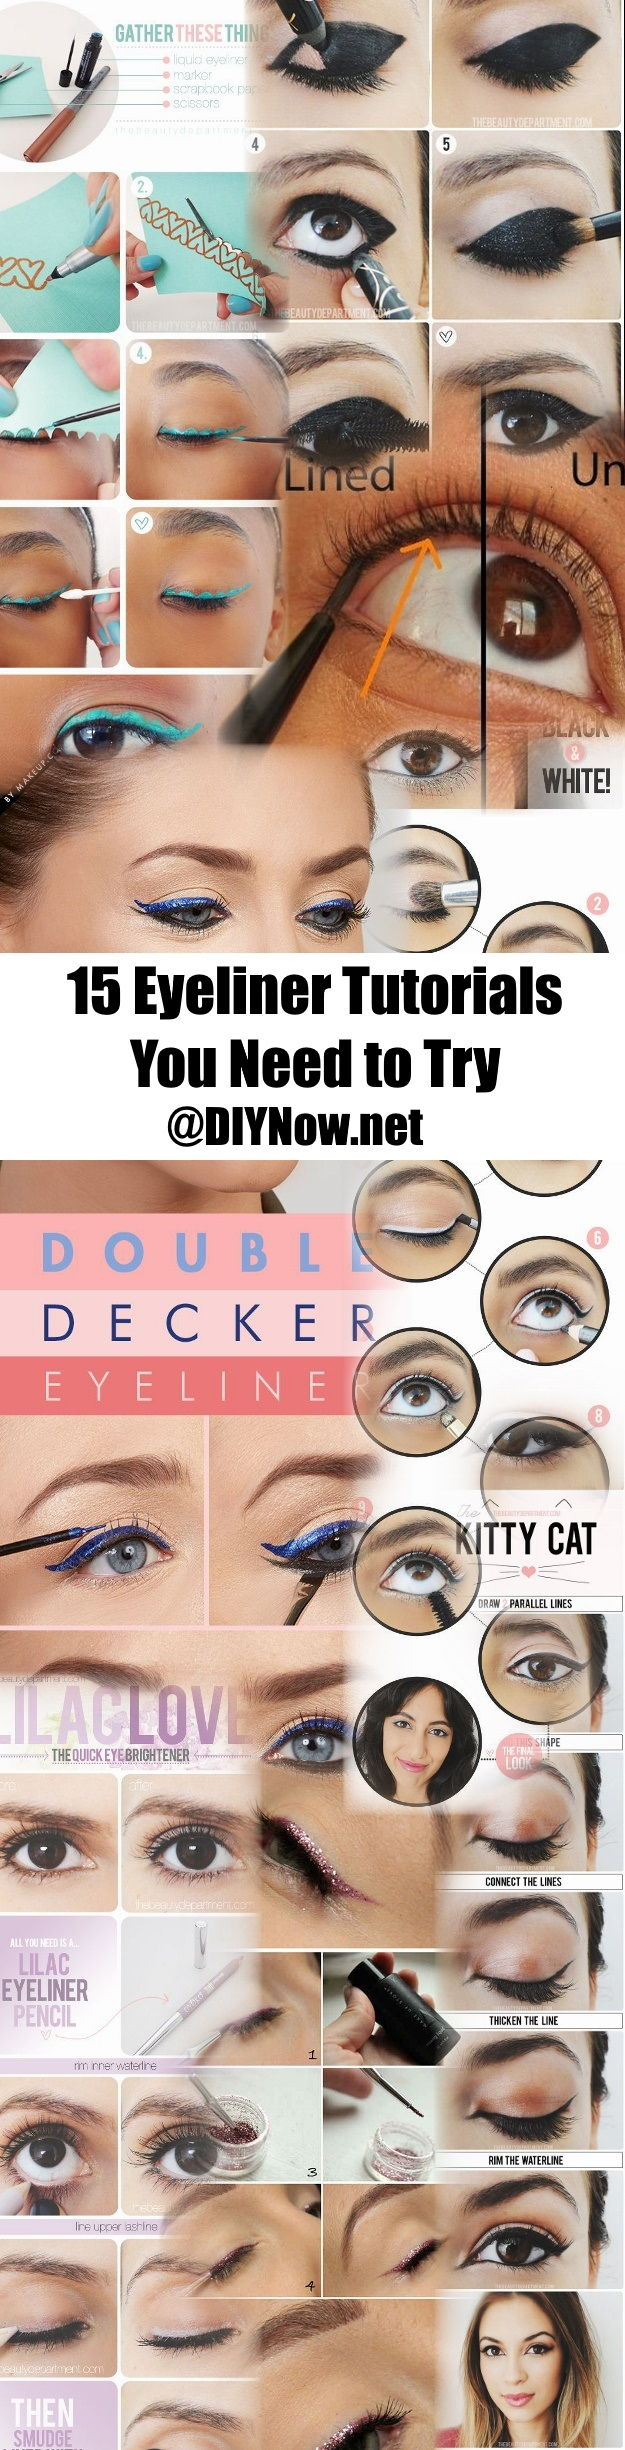 15 Eyeliner Tutorials You Need to Try